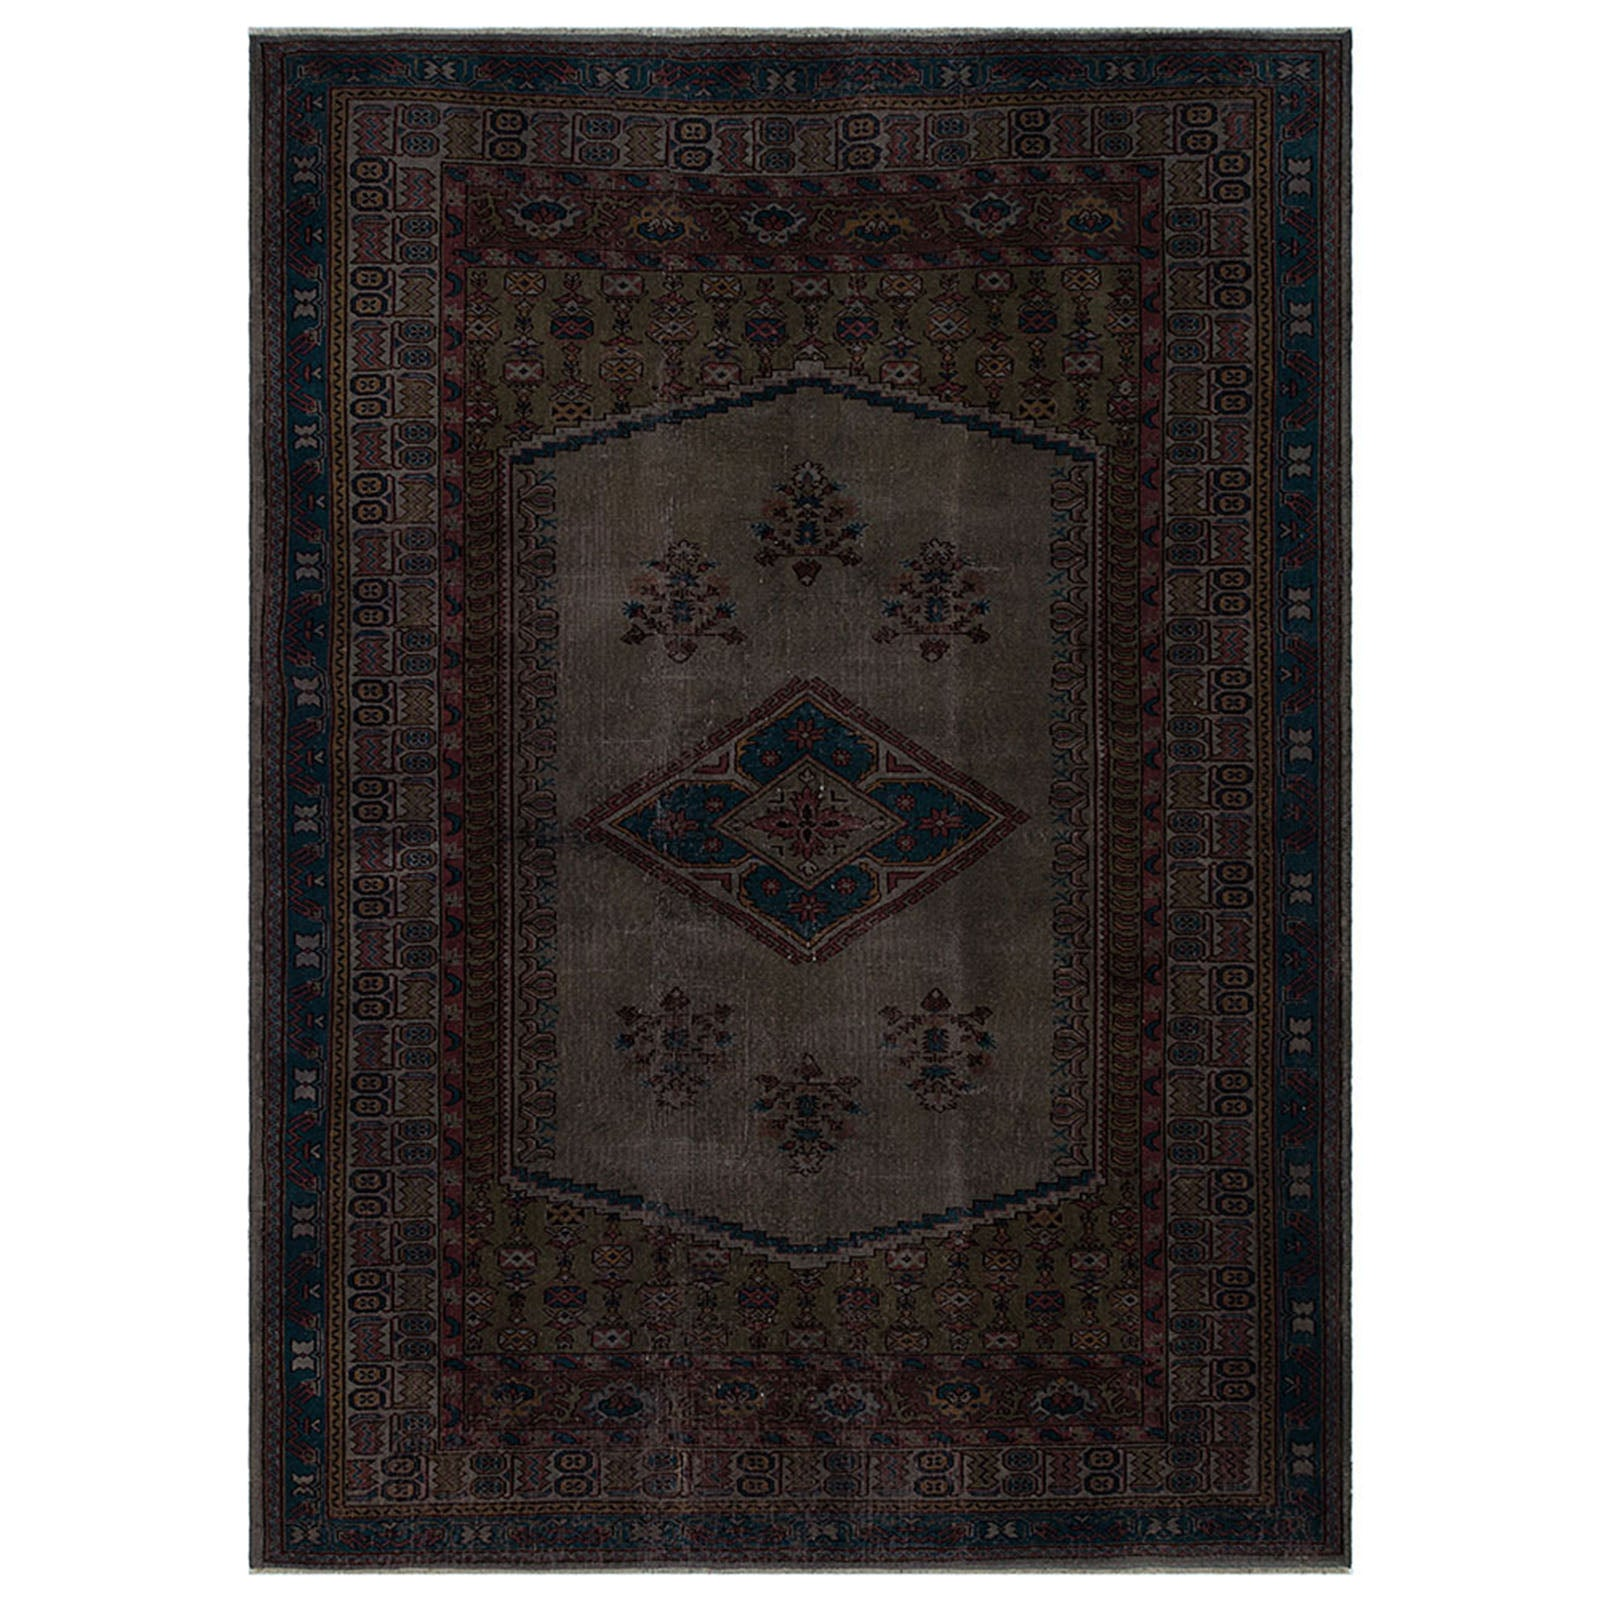 Hali 175X242 CM Bursa Handmade over dyed 2133